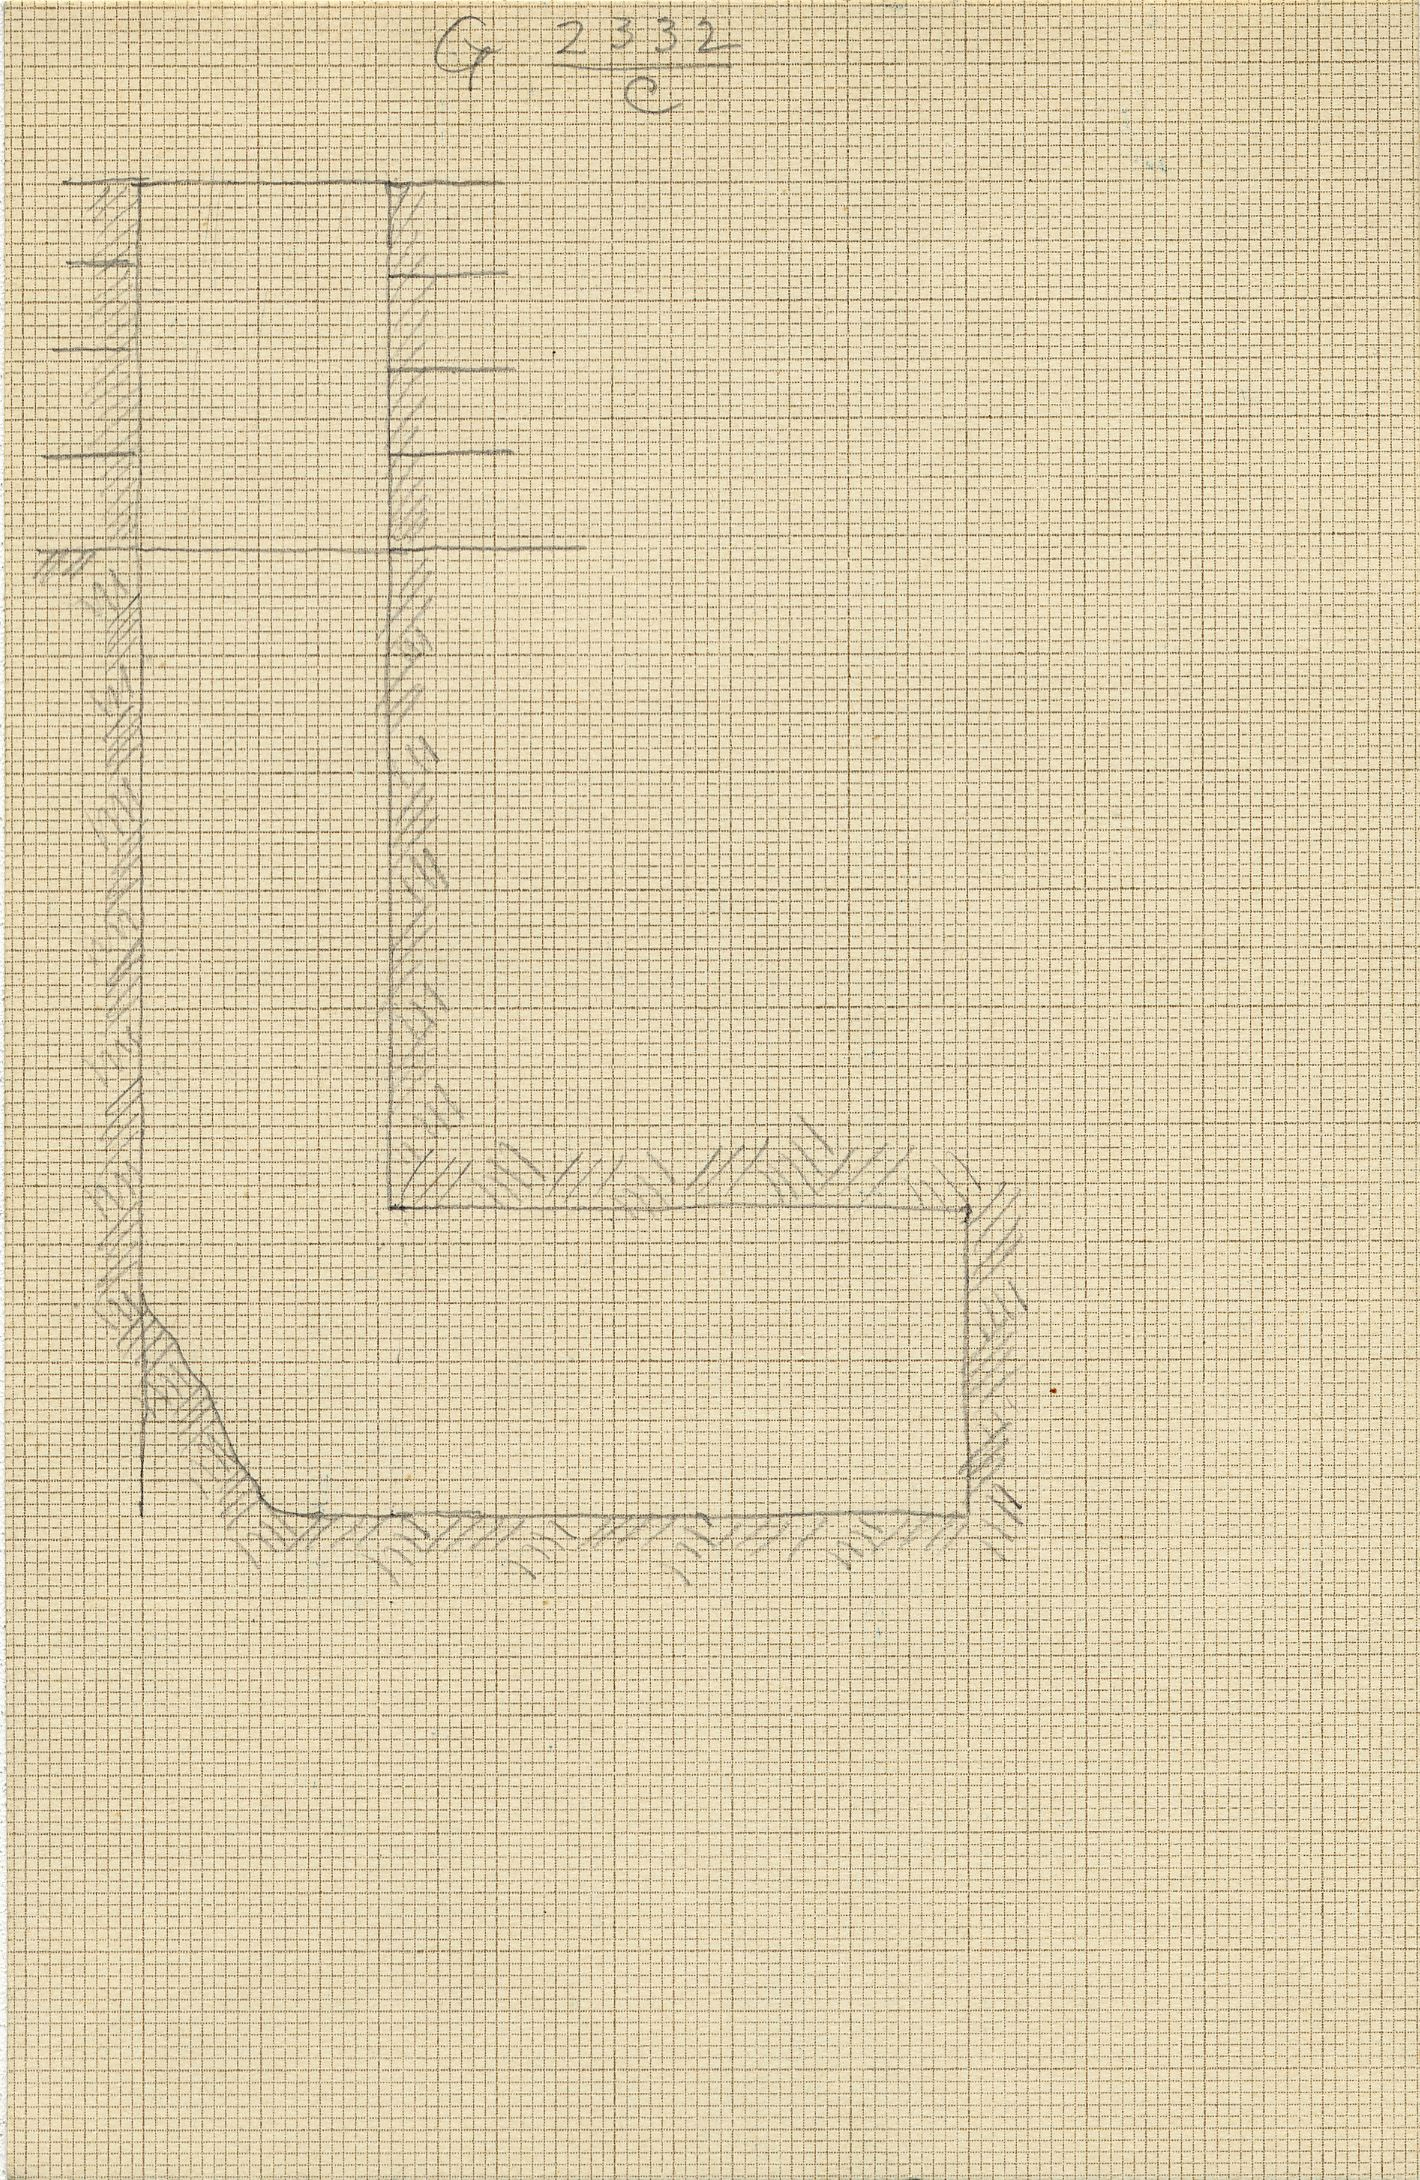 Maps and plans: G 2332, Shaft C